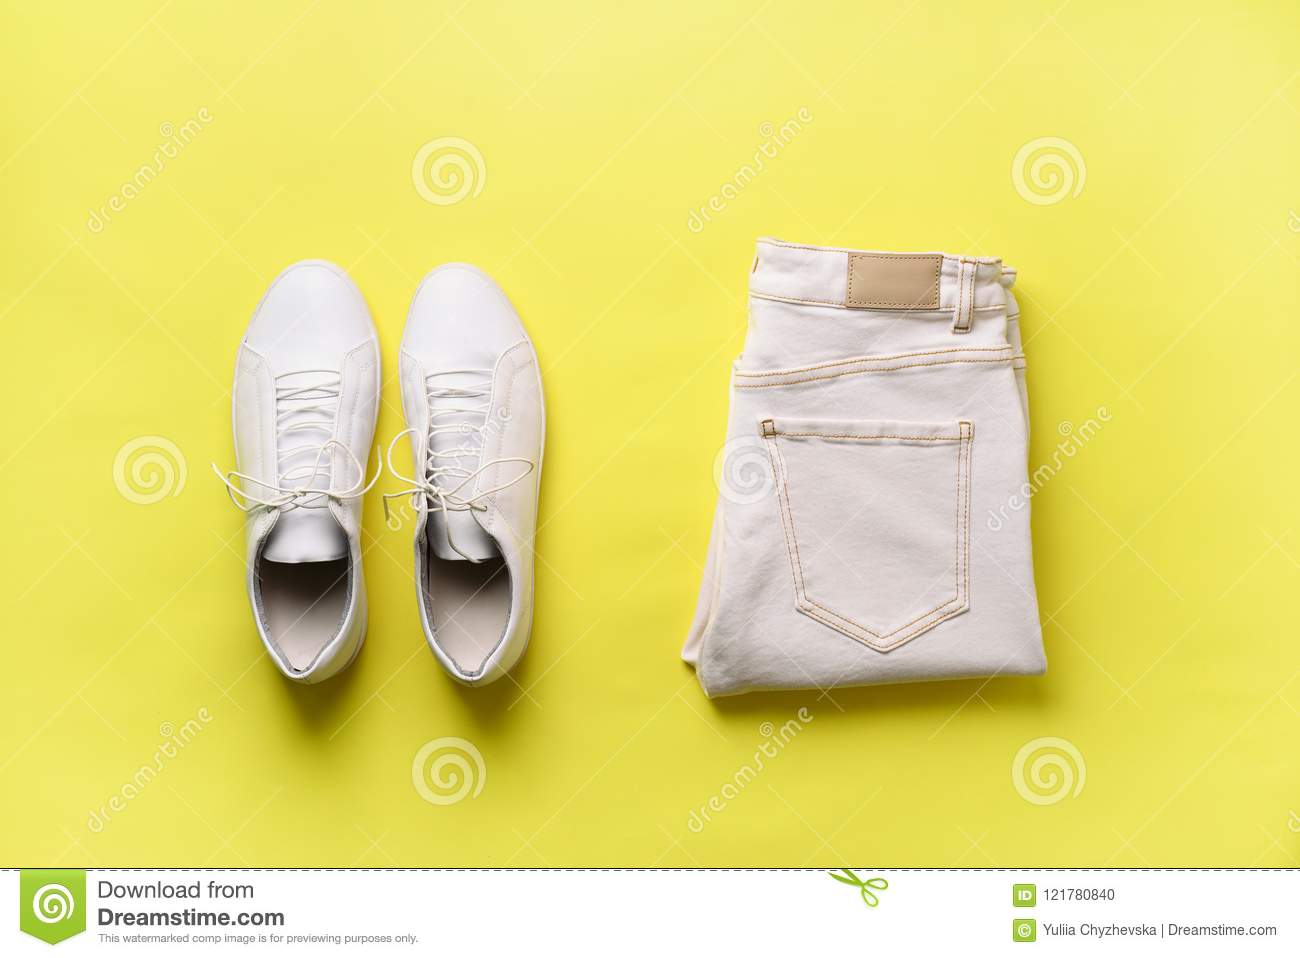 Female white sneakers and jeans on yellow background with copy space. Top view. Summer fashion, shopping, capsule